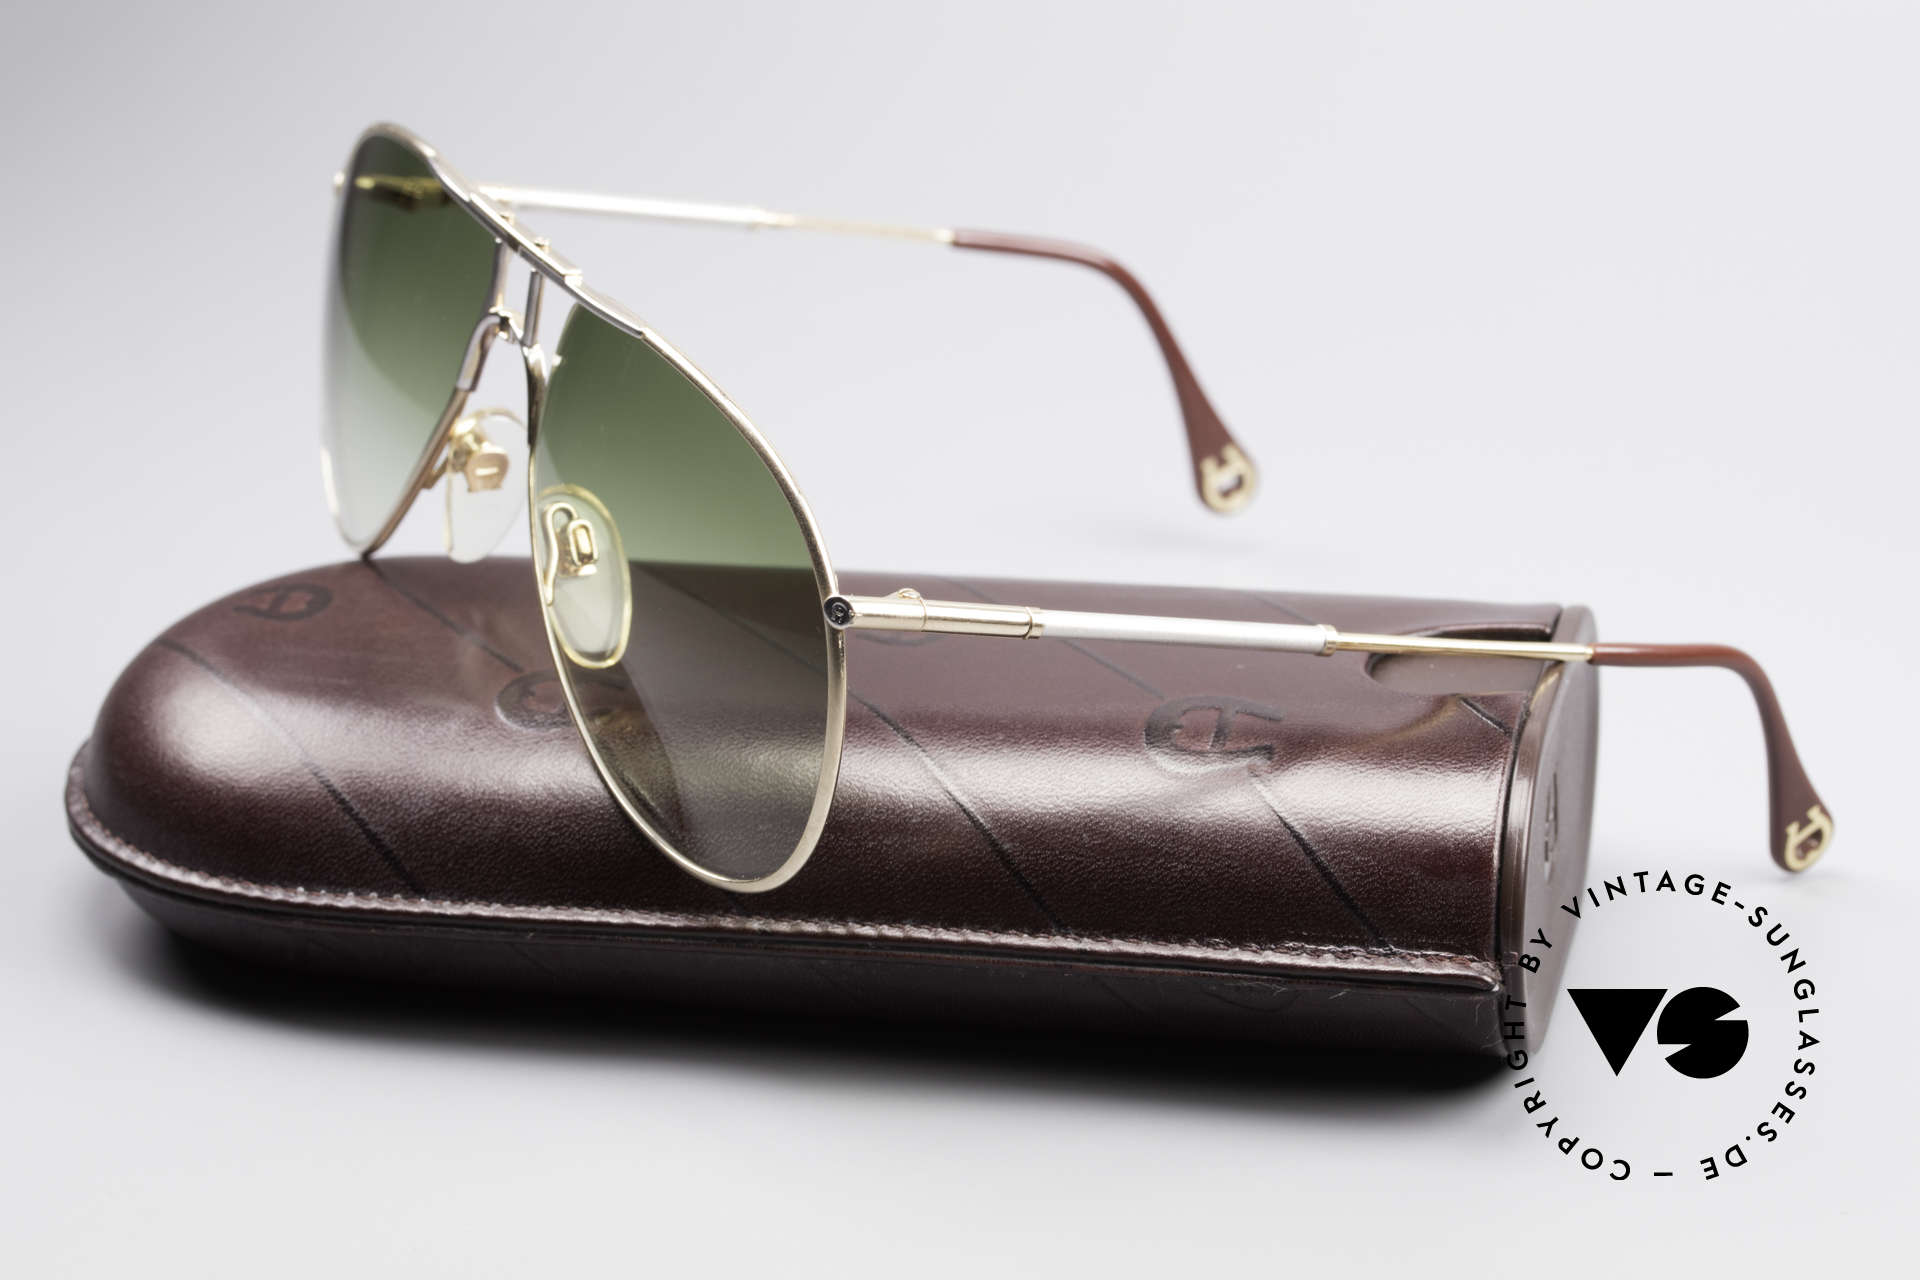 Aigner EA4 80's Luxury Sunglasses Men, NO retro shades, but the most wanted Aigner 80's model, Made for Men